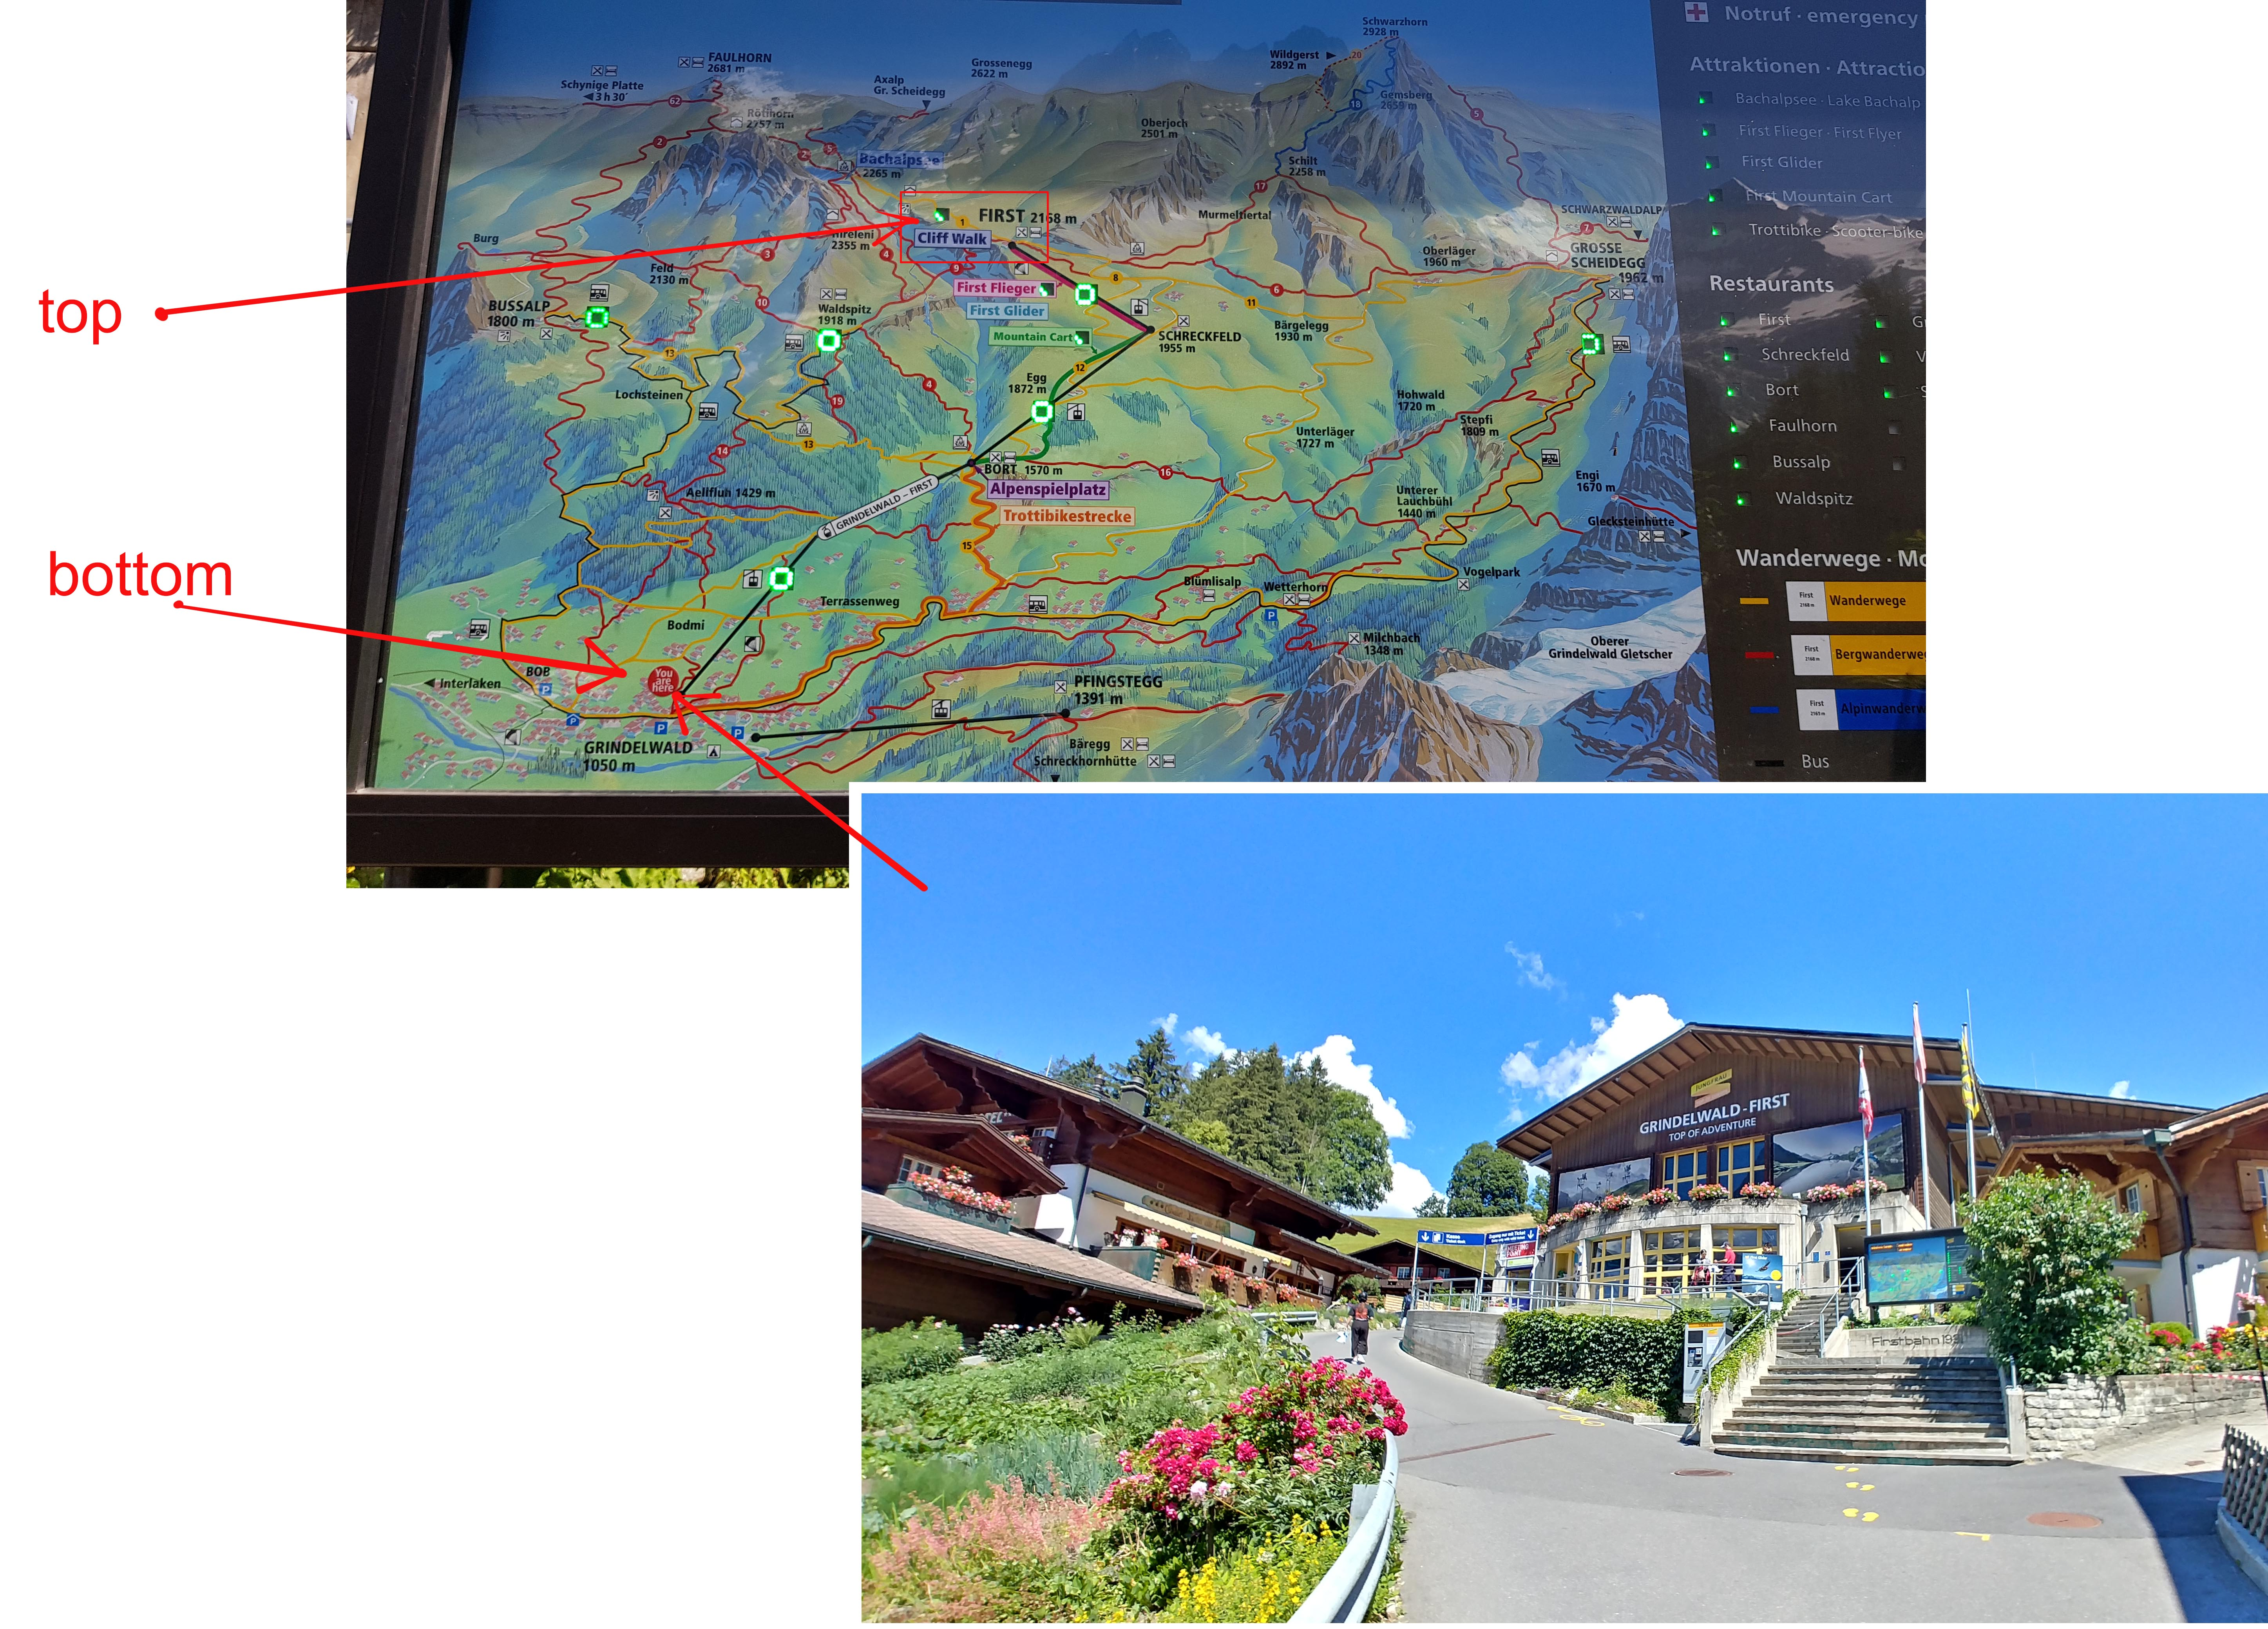 Grindelwald-First Cable Car station